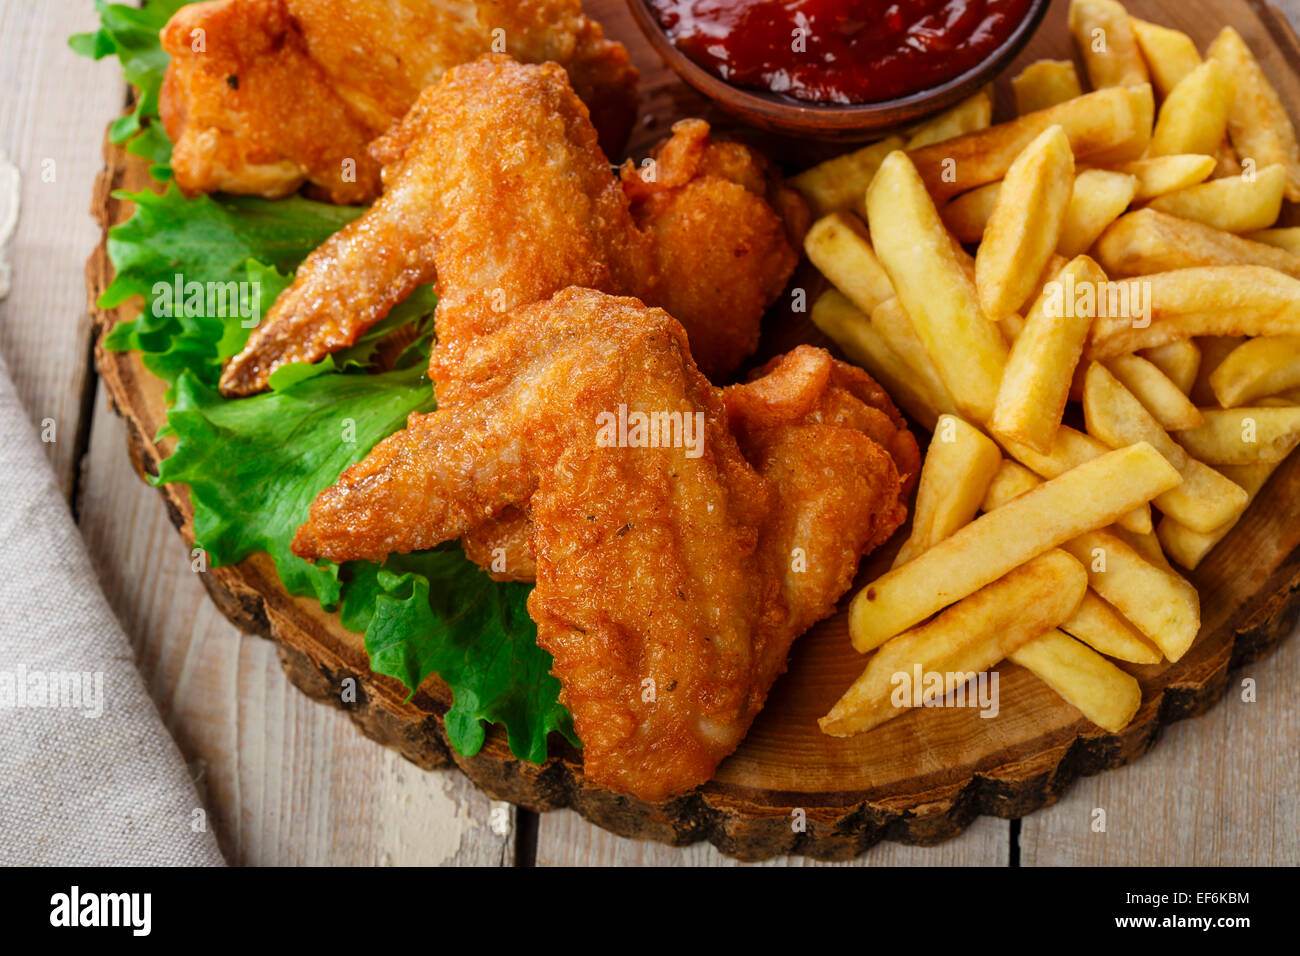 Fried chicken wings with sauce and French fries - Stock Image